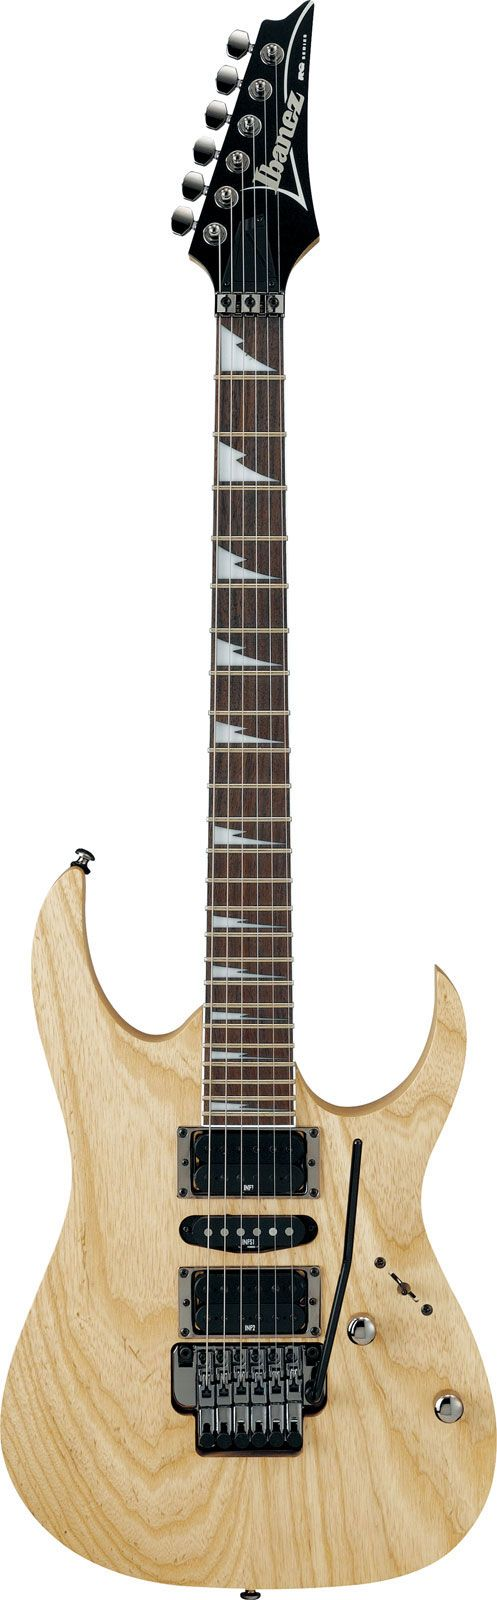 Ibanez RG470AHZ-NTF Electric Guitar Natural Flat... I love Ibanez guitars so…